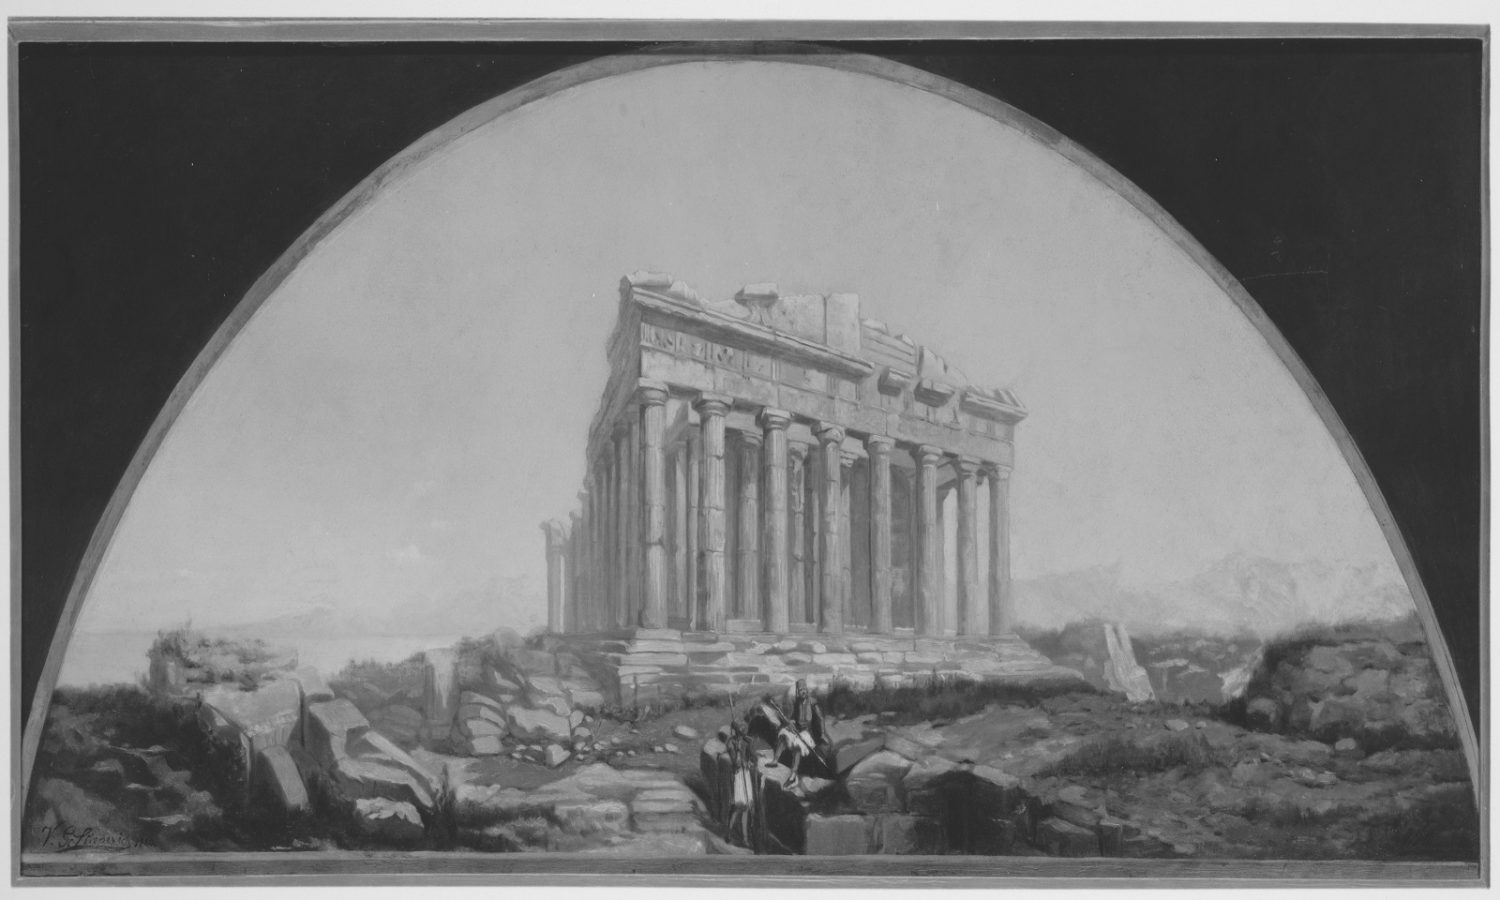 The Parthenon mythology